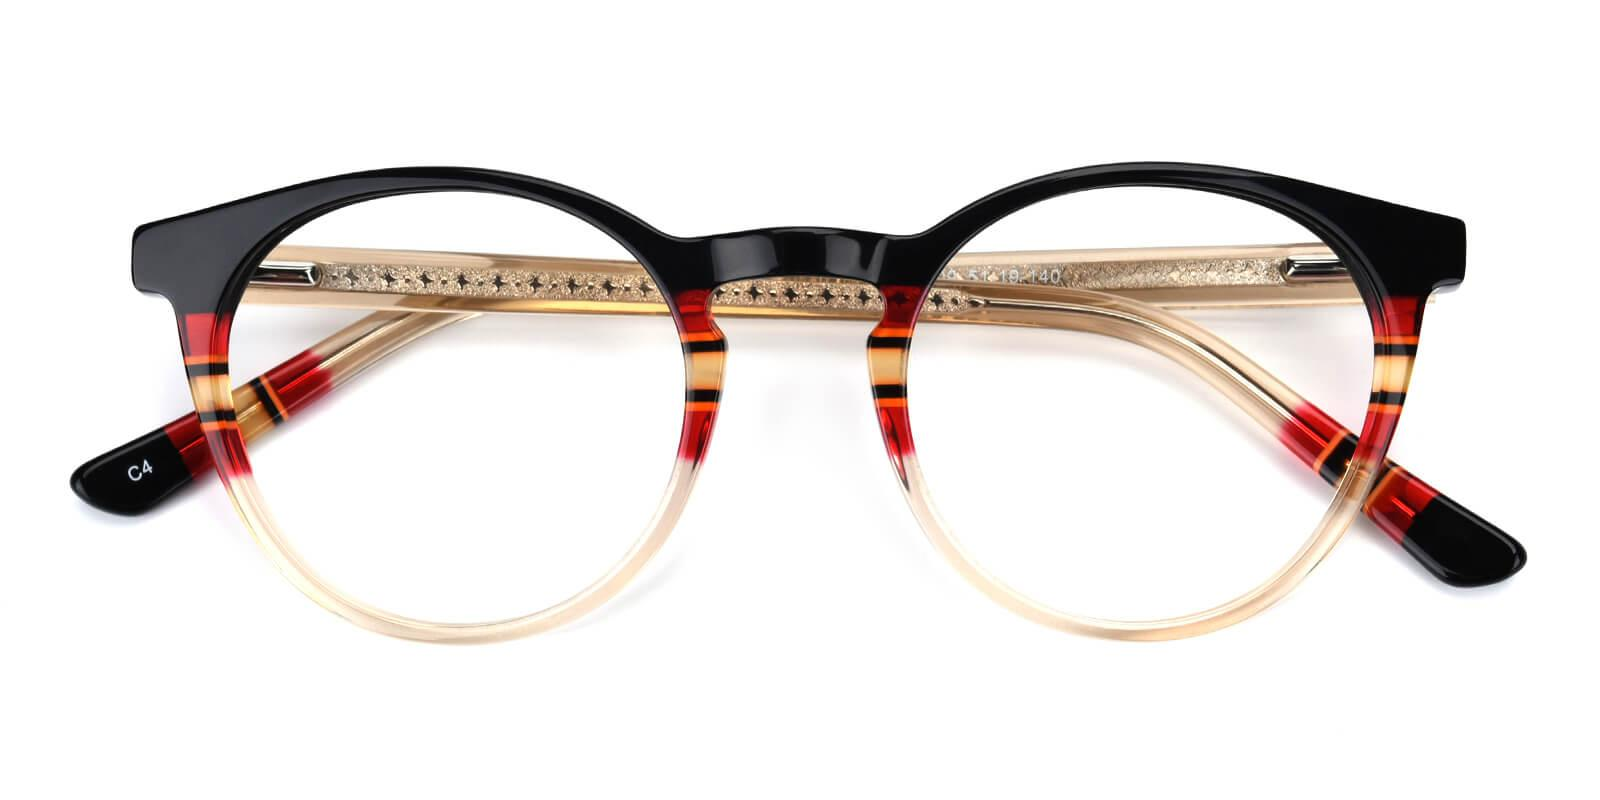 Gabrielle-Black-Oval-Acetate-Eyeglasses-detail